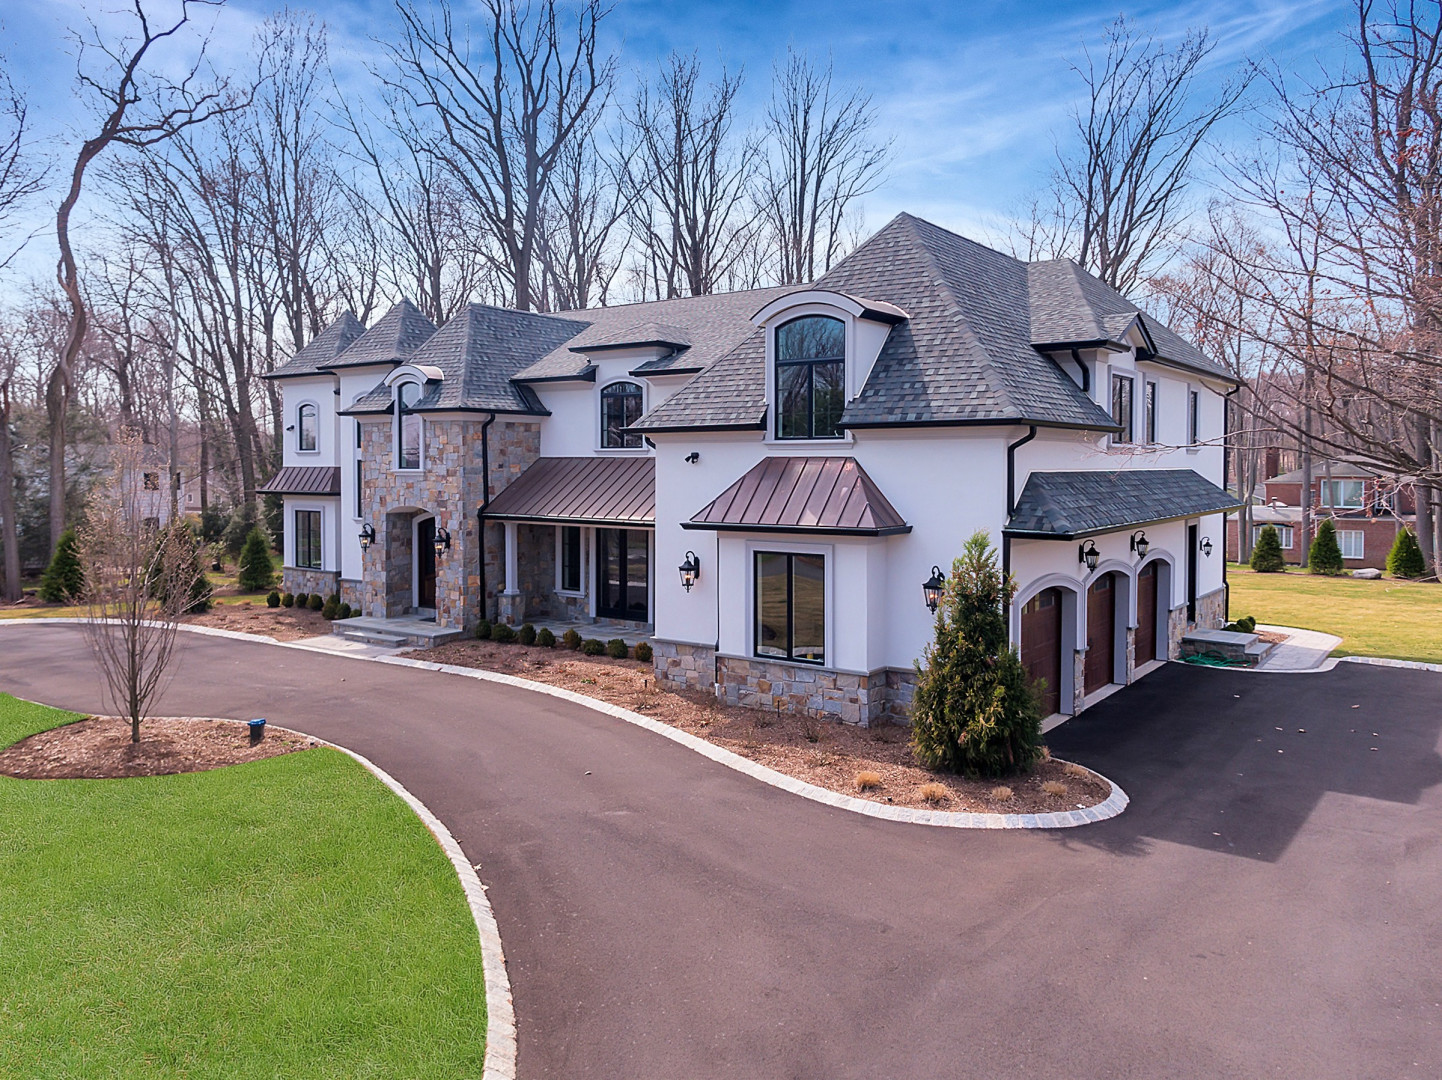 Single Family Home for Sale at French Country Manor 7 Shadow Rd Upper Saddle River, 07458 United States